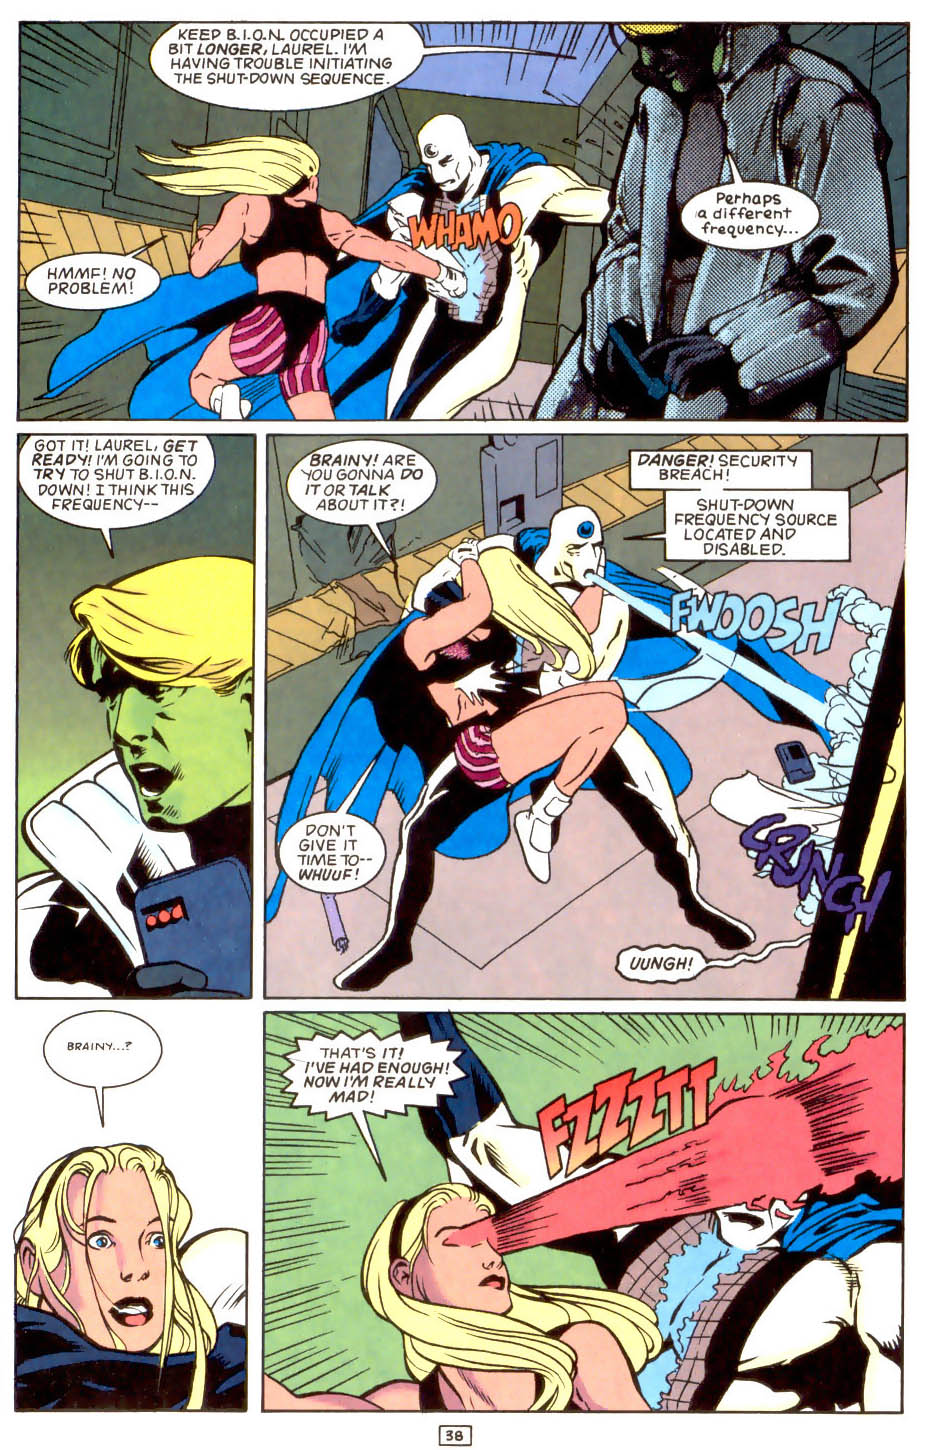 Legion of Super-Heroes (1989) 50 Page 38